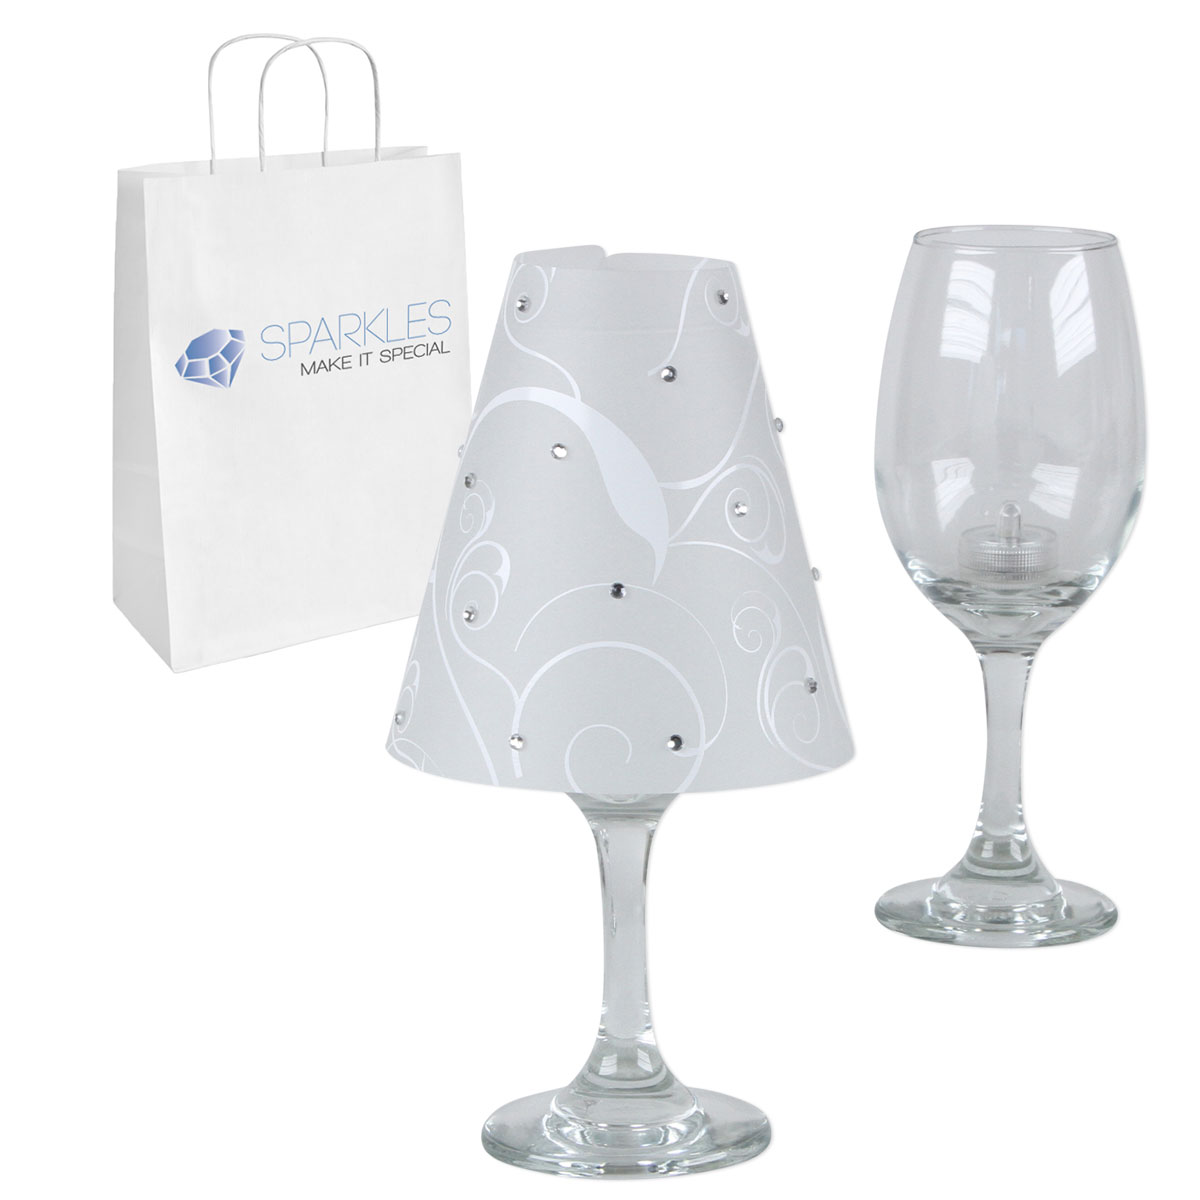 Wine glass lamp shades w rhinestones led tea lights kit for Wine glass decorations for weddings